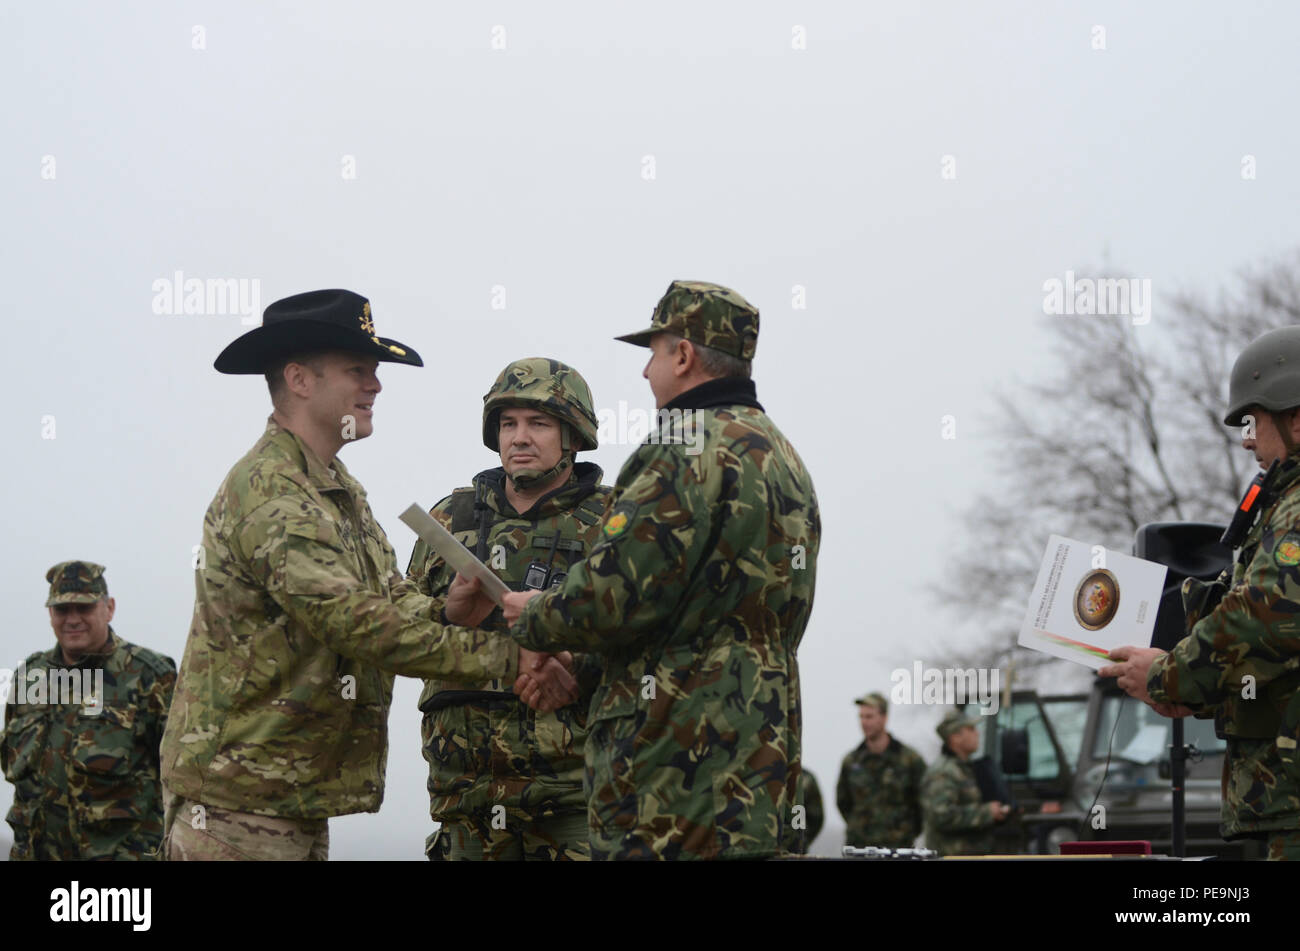 Bulgarian Col. Margarit Mihailov (right), the commander of 61st Mechanized Brigade, presents U.S. Army Maj. Brennan Speakes, the operations officer in charge of 5th Squadron, 7th Cavalry Regiment, stationed at Fort Stewart, Ga., with a certificate of appreciation during the closing ceremony of Exercise Peace Sentinel at Novo Selo Training Center, Bulgaria, Nov. 24, 2015. (U.S. Army photo by Staff Sgt. Steven M. Colvin/Released) - Stock Image